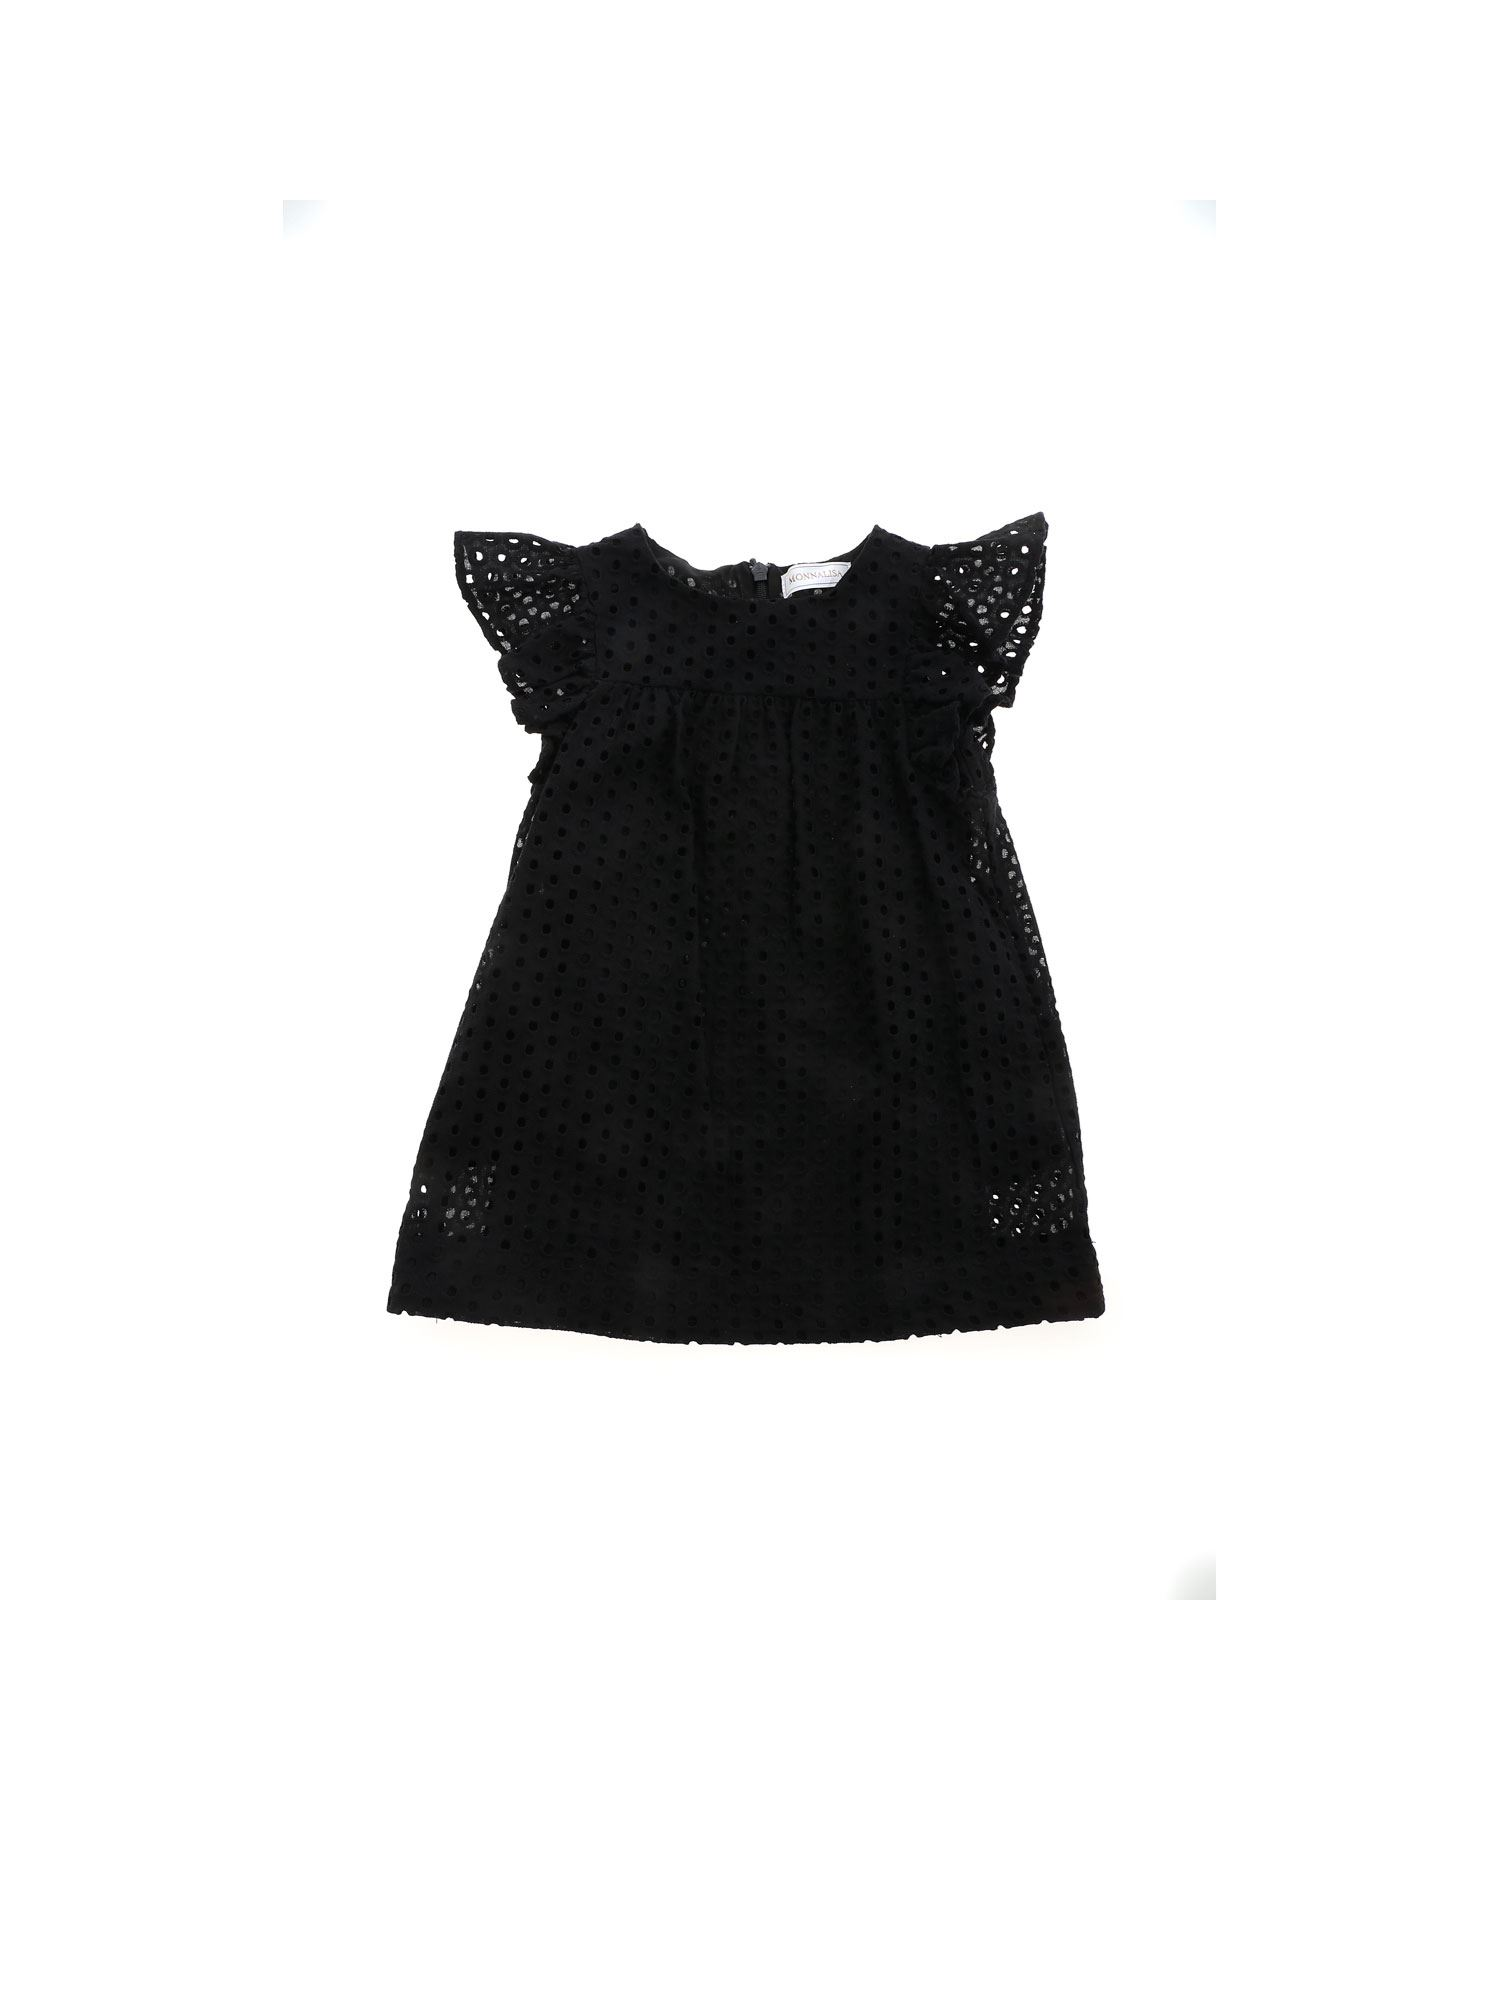 Monnalisa Cottons MARY POLKA DOT EMBROIDERED DRESS IN BLACK